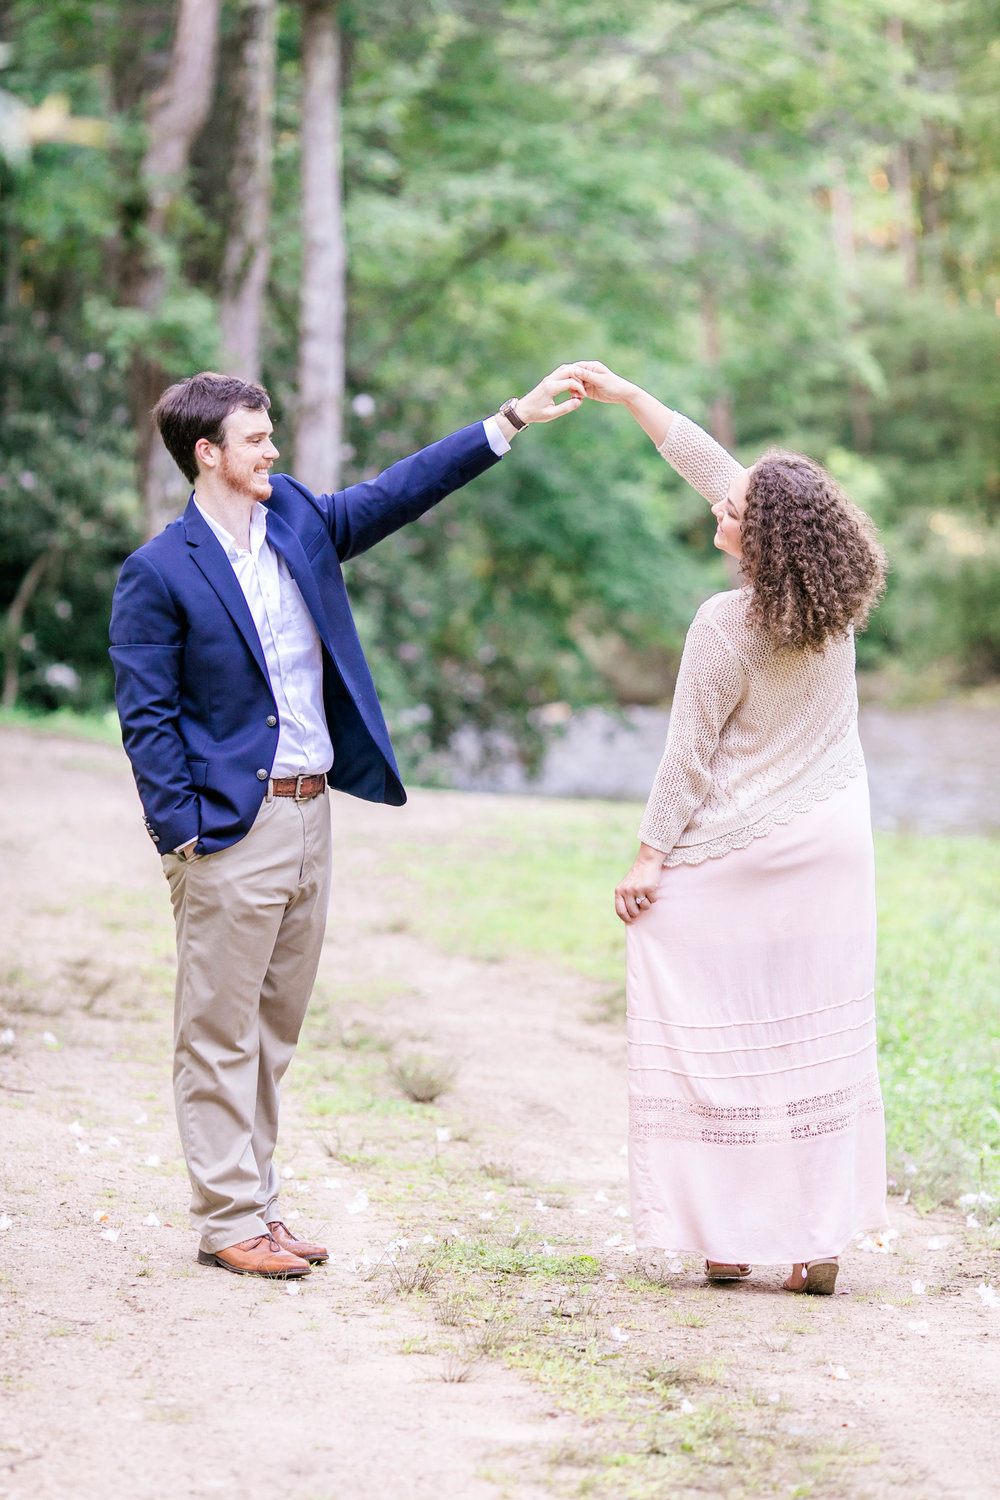 East Tennessee engagement session, wedding photographer, portrait photography, bride and groom, Doe River Gorge, wedding venue, Tri Cities wedding photographer, Johnson City, twirling couple